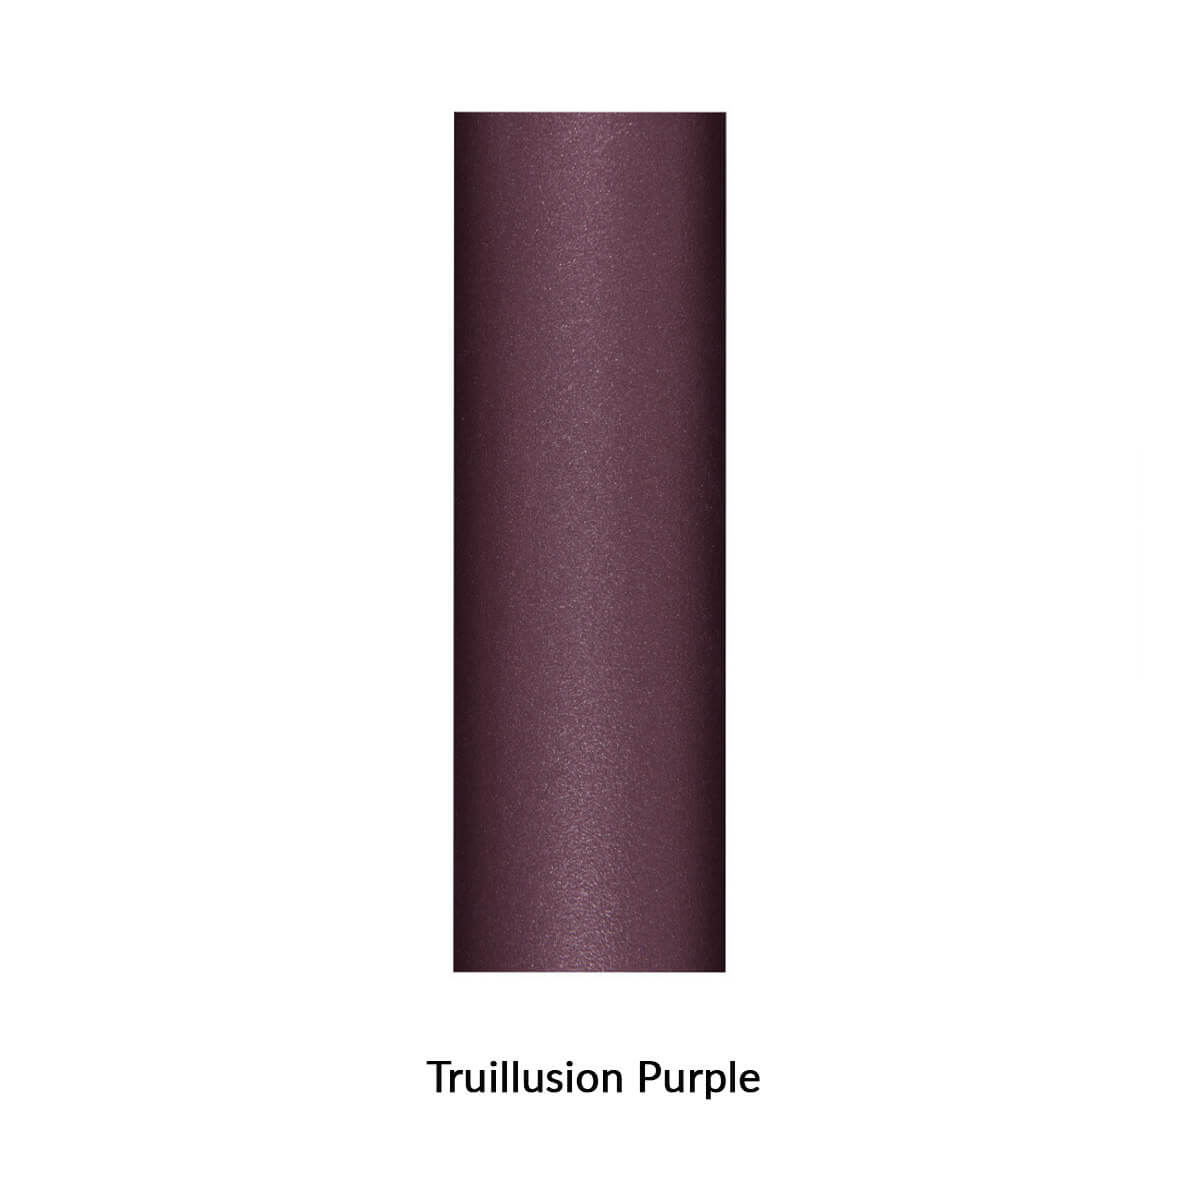 truillusion-purple.jpg